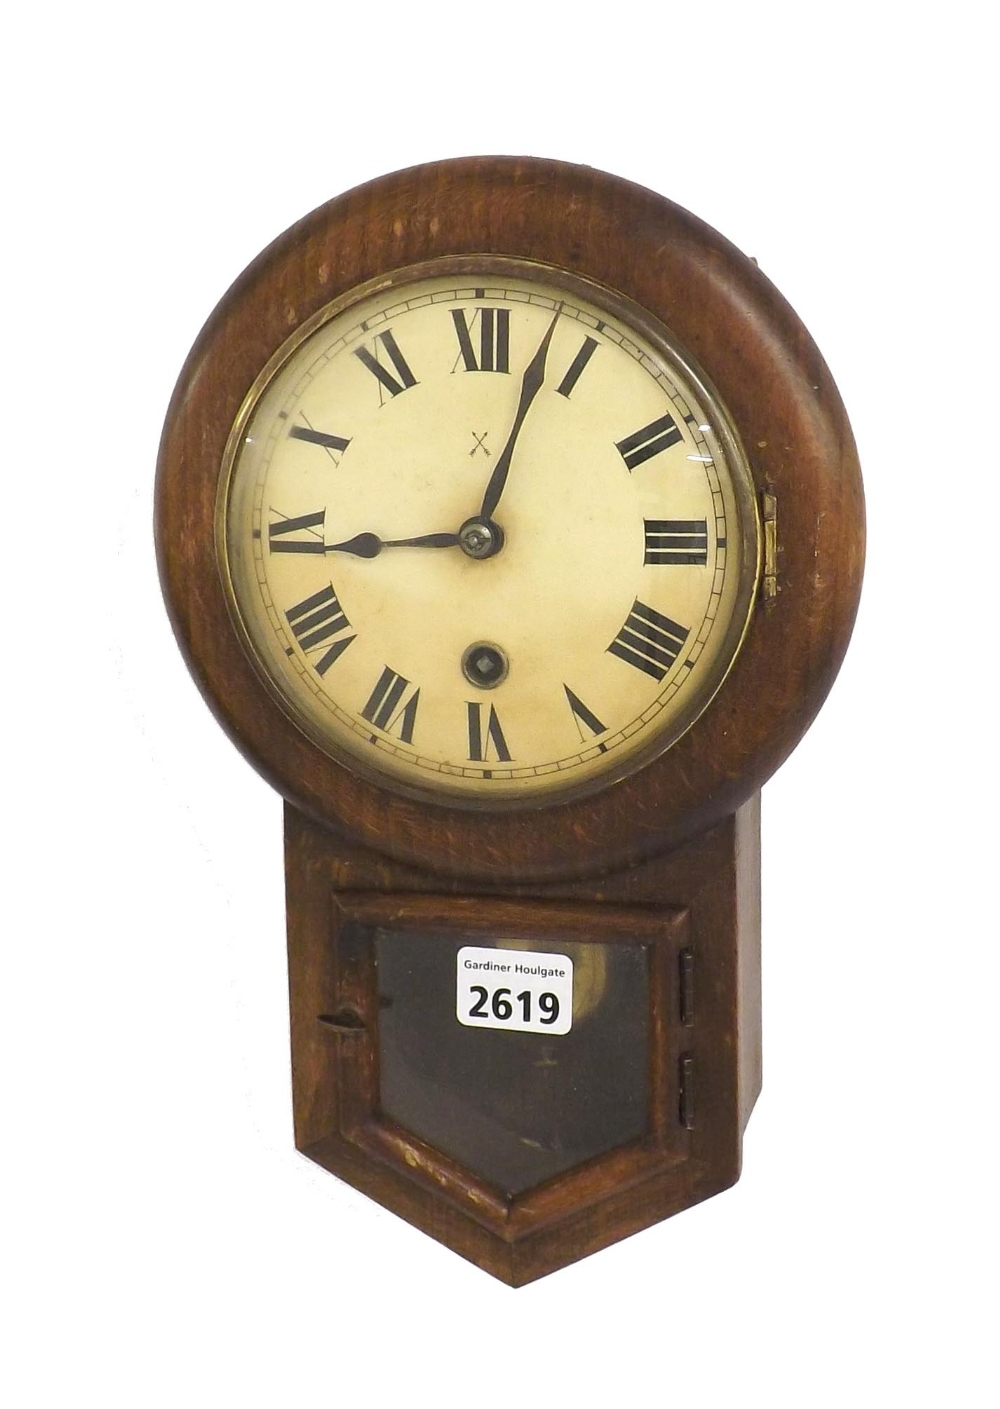 Small oak hac 5 drop dial wall clock within a turned surround lot 2619 small oak hac 5 drop dial wall clock within a turned amipublicfo Choice Image